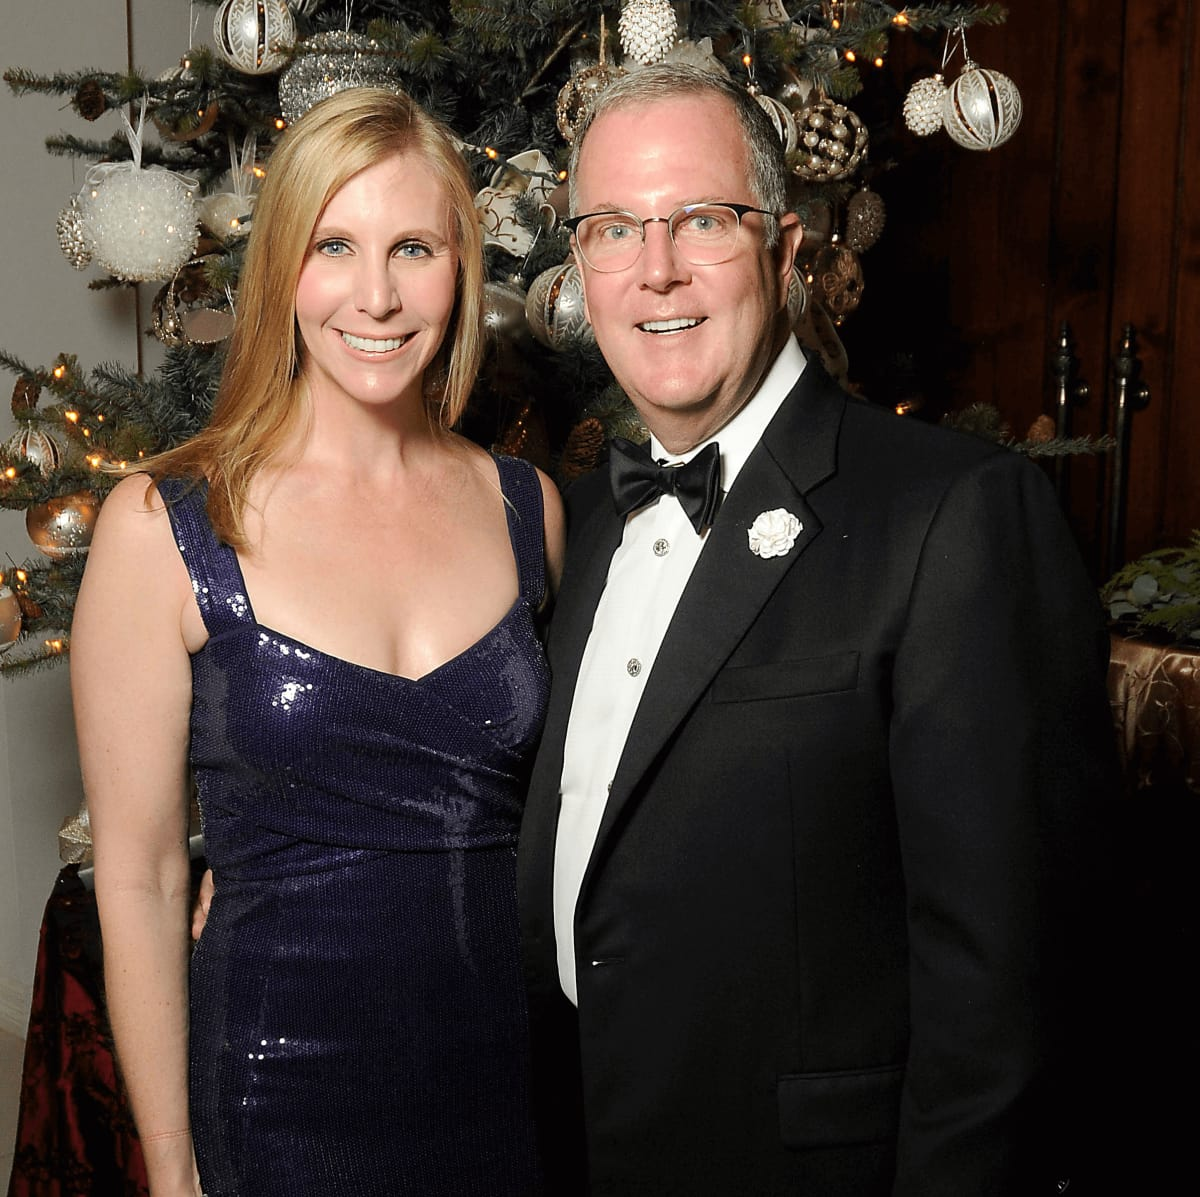 Houston, Trees of Hope gala, Nov. 2016, Heather Holmes, Richard Holmes